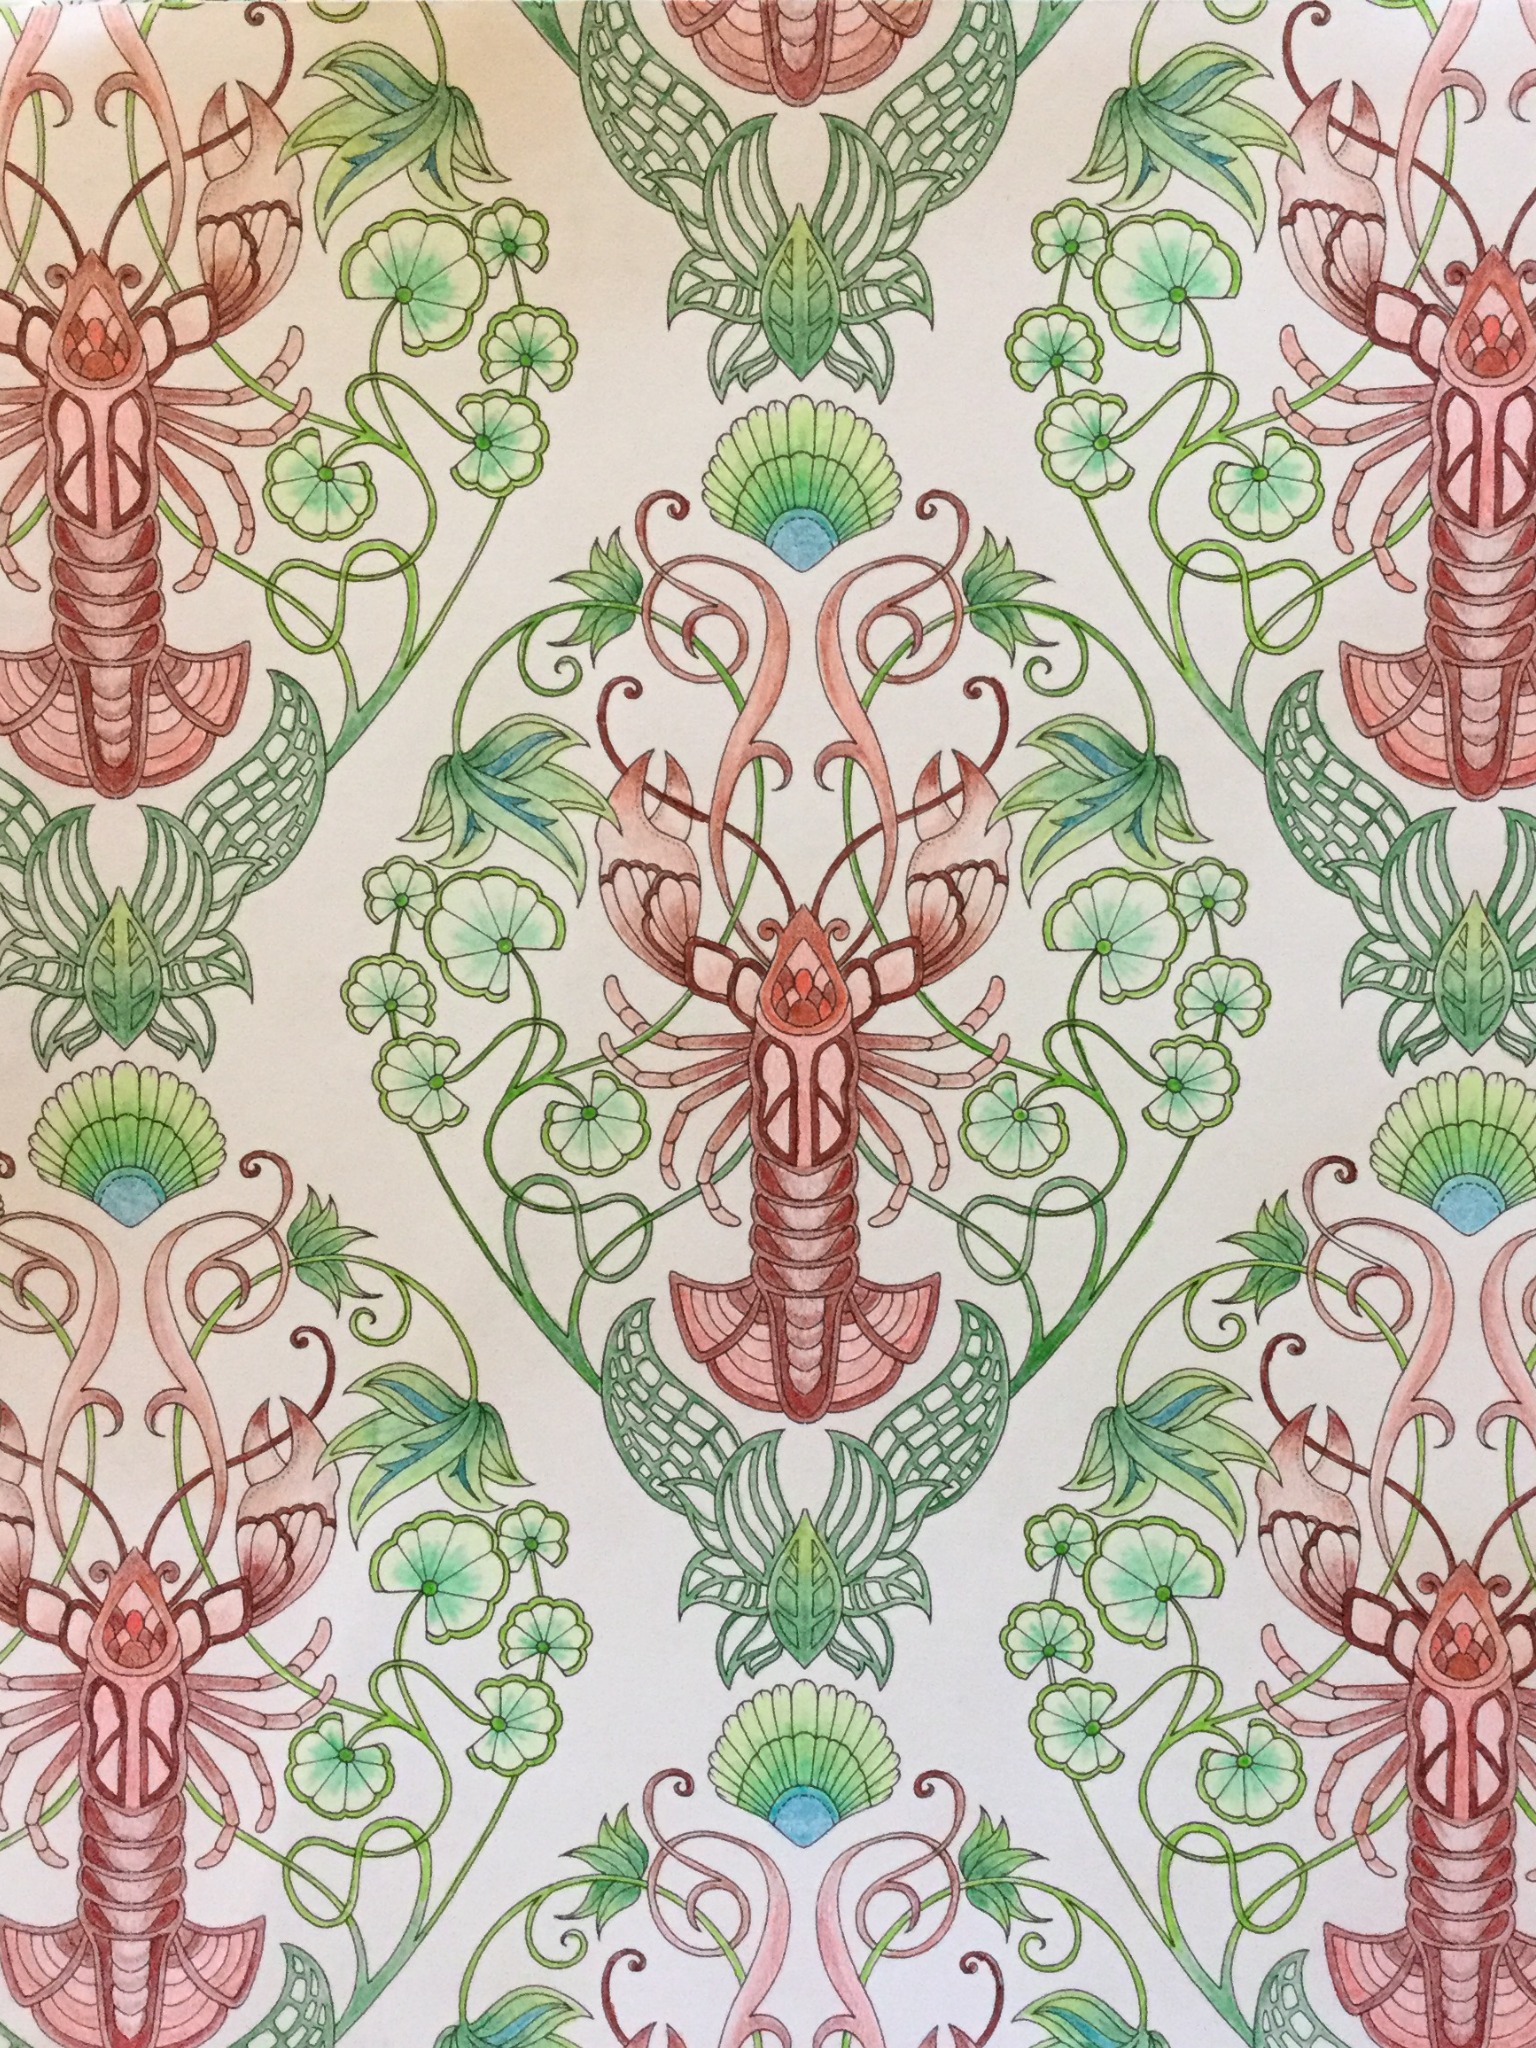 Lobsters From My Johanna Basford 2016 17 Coloring Book Planner Finished 9